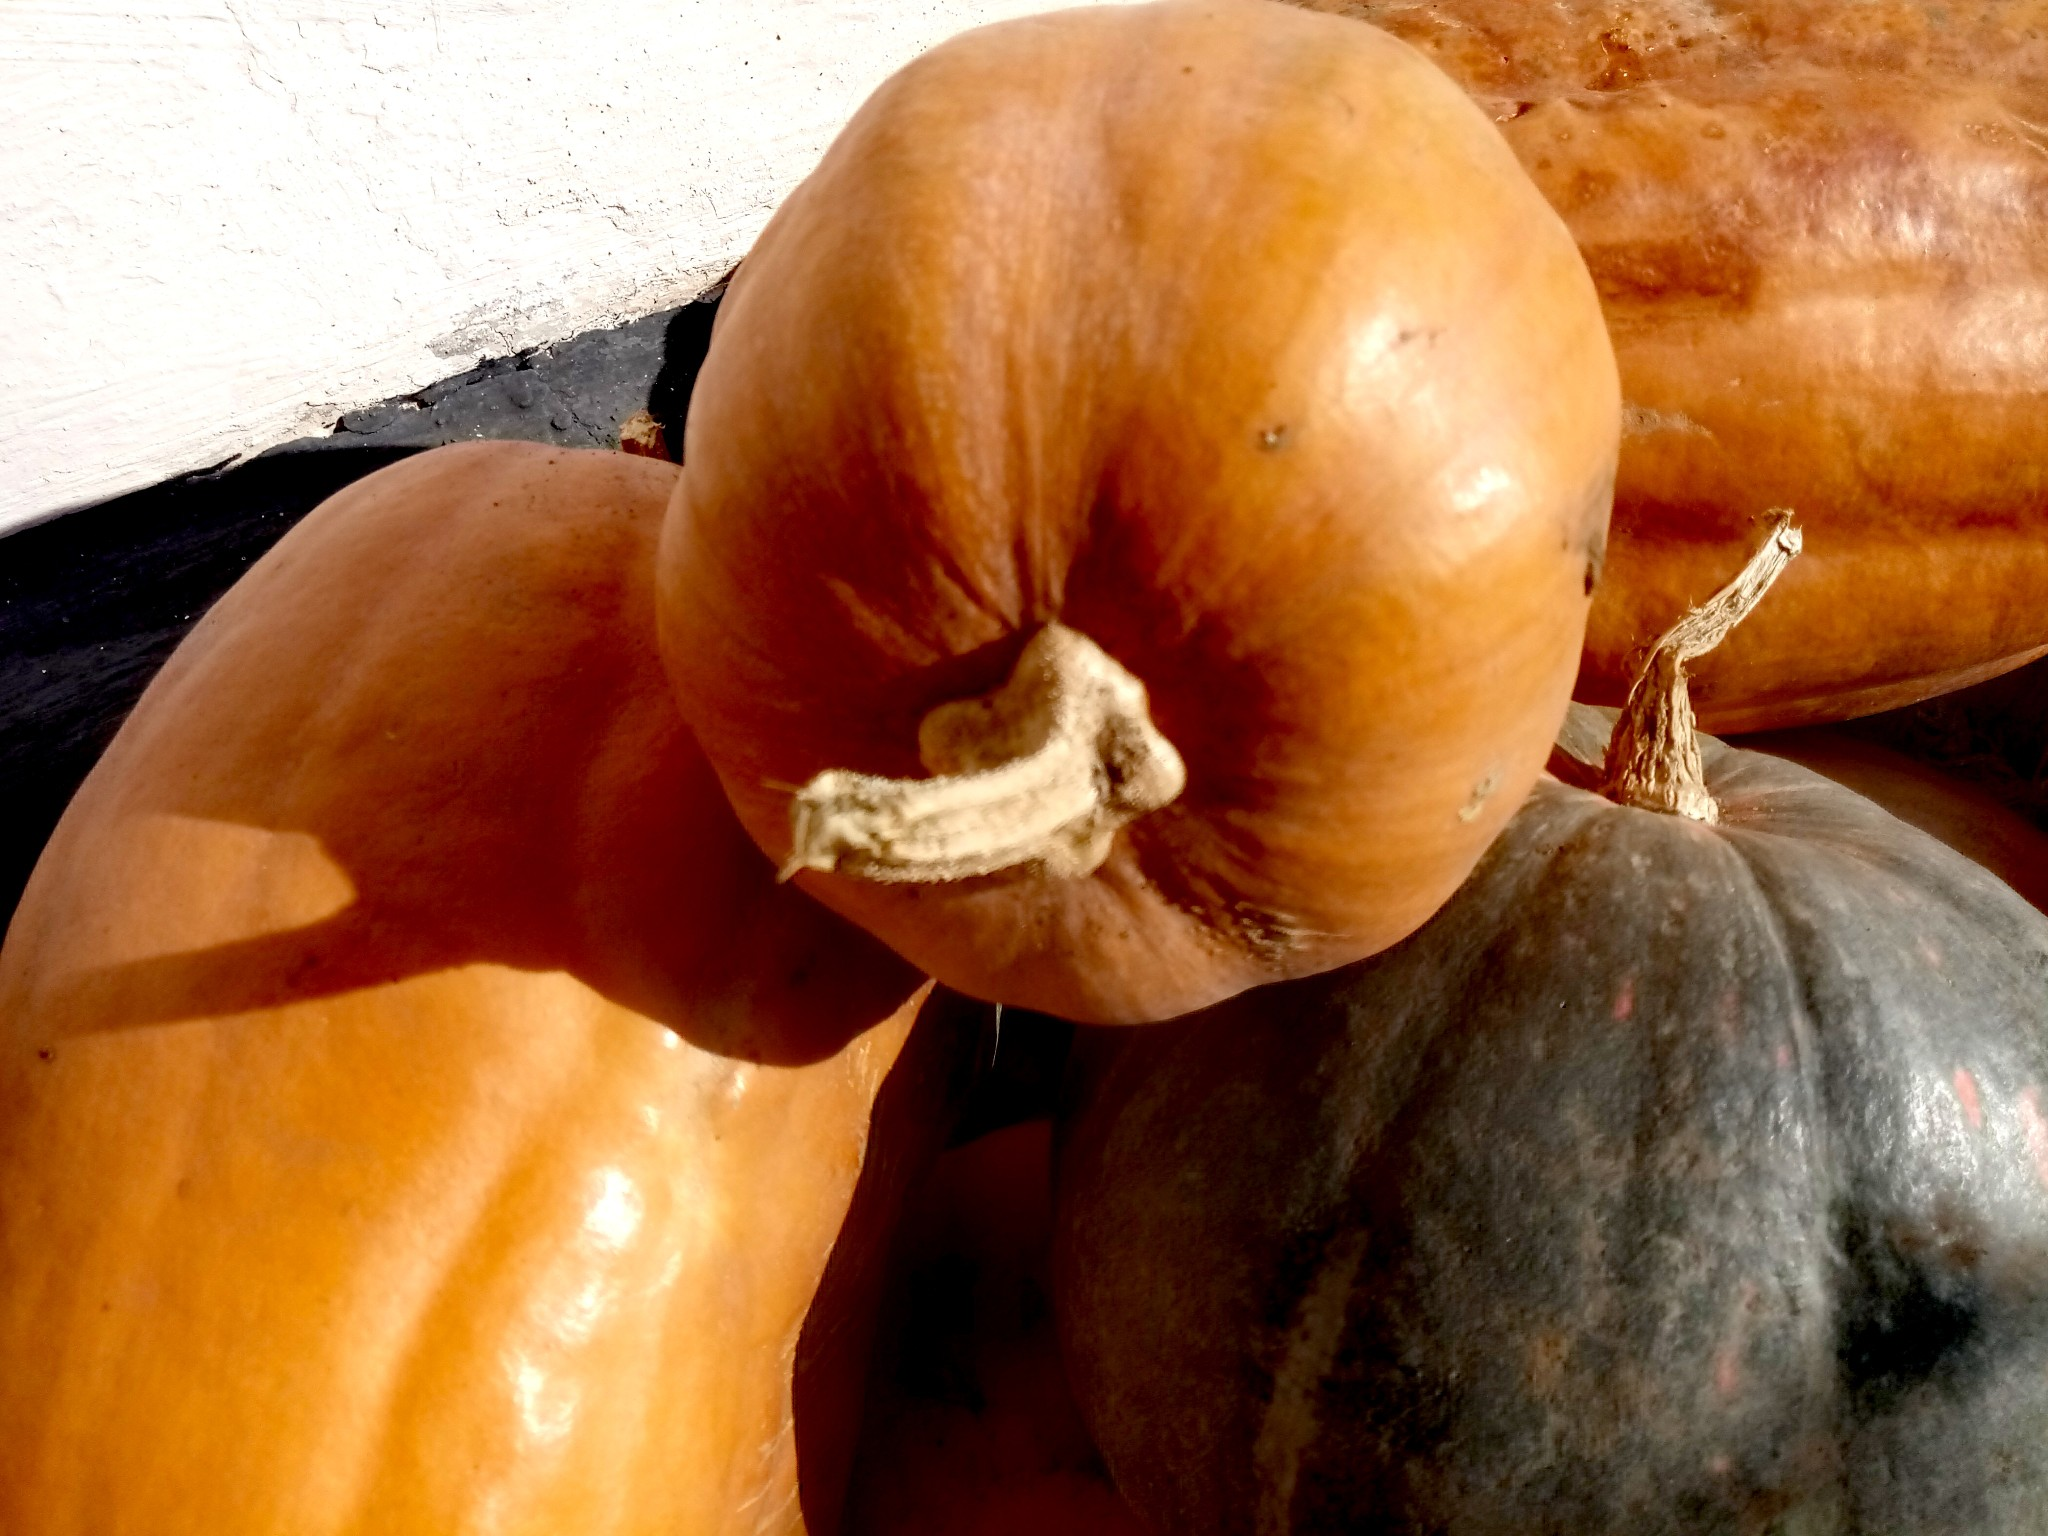 Pumpkins photo 8